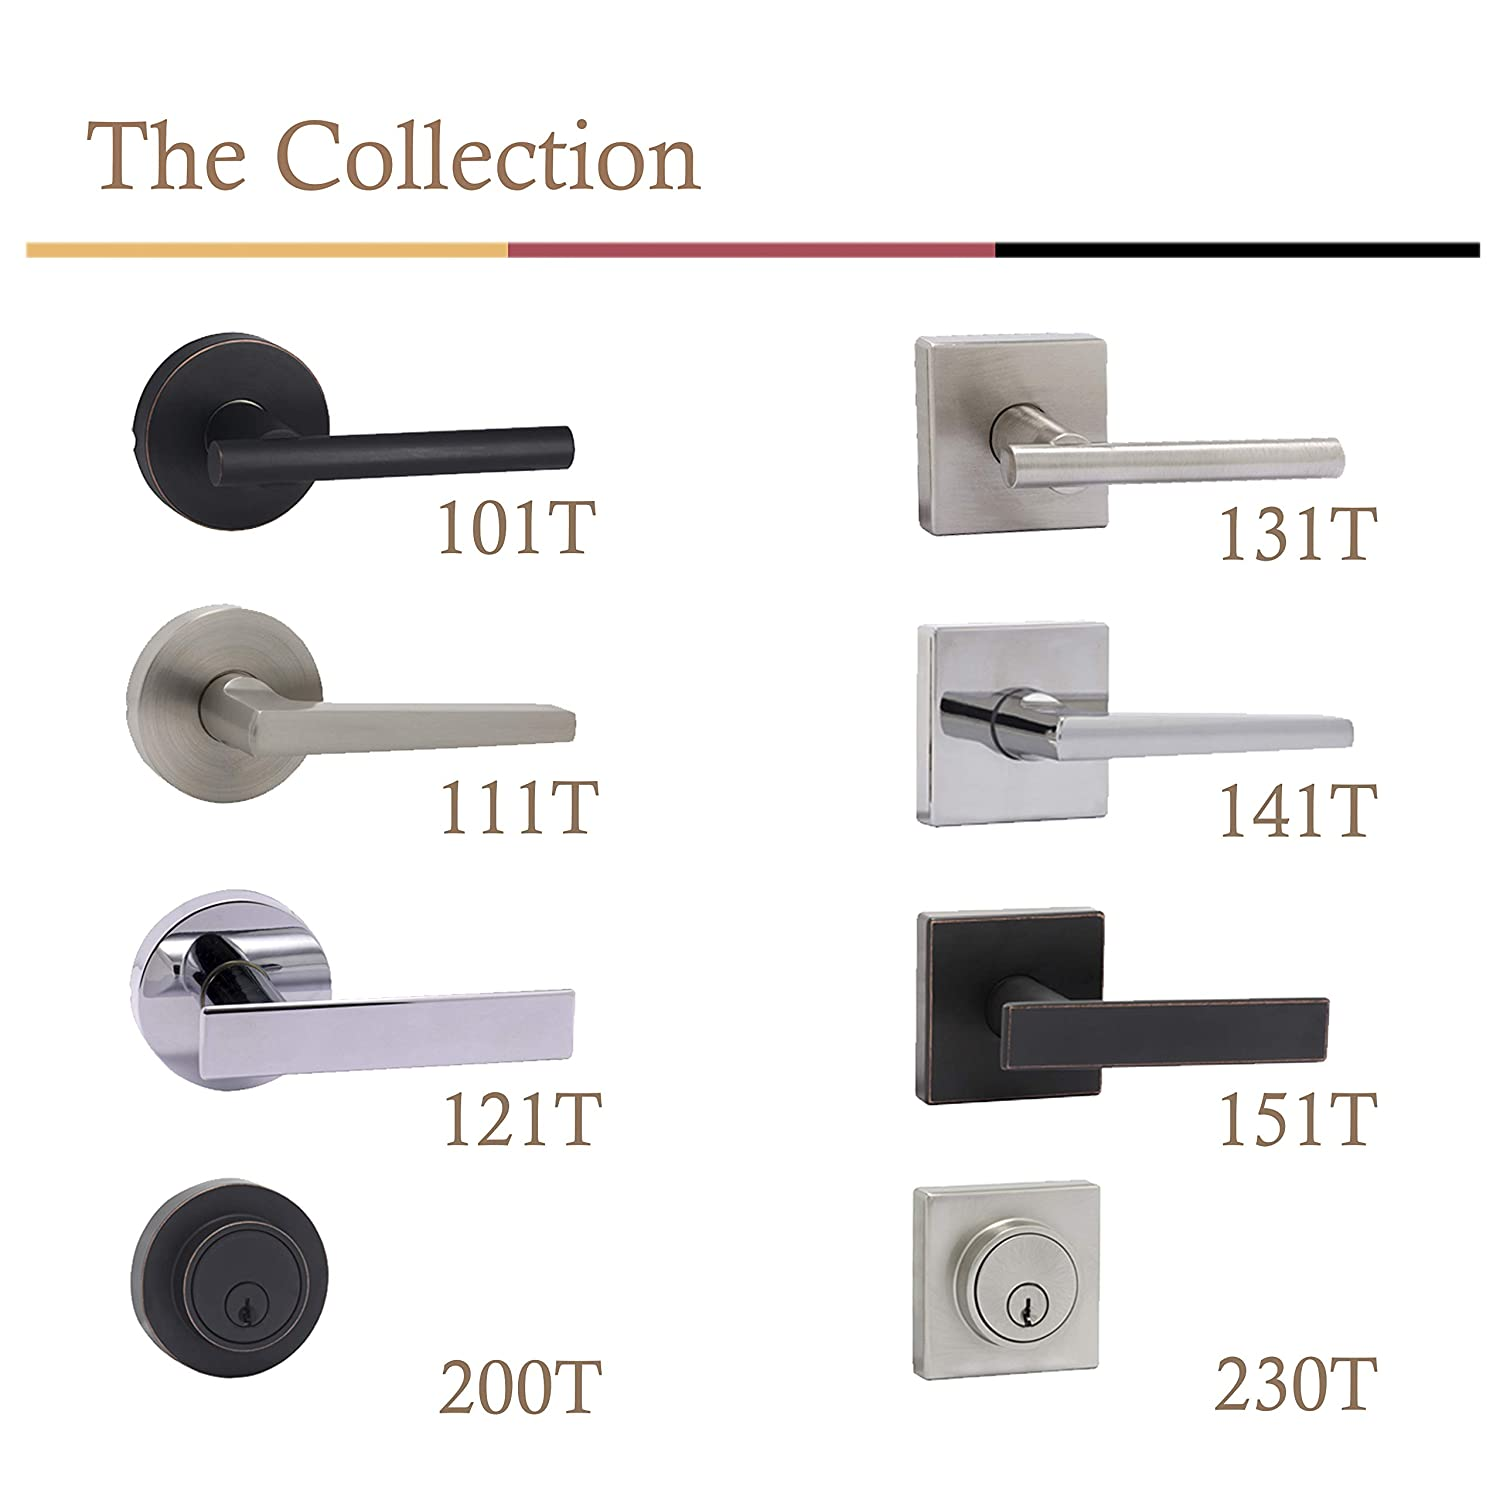 Polished Chrome Bamberg 122T Passage Door Lock Lever Handle for Hall and Closet